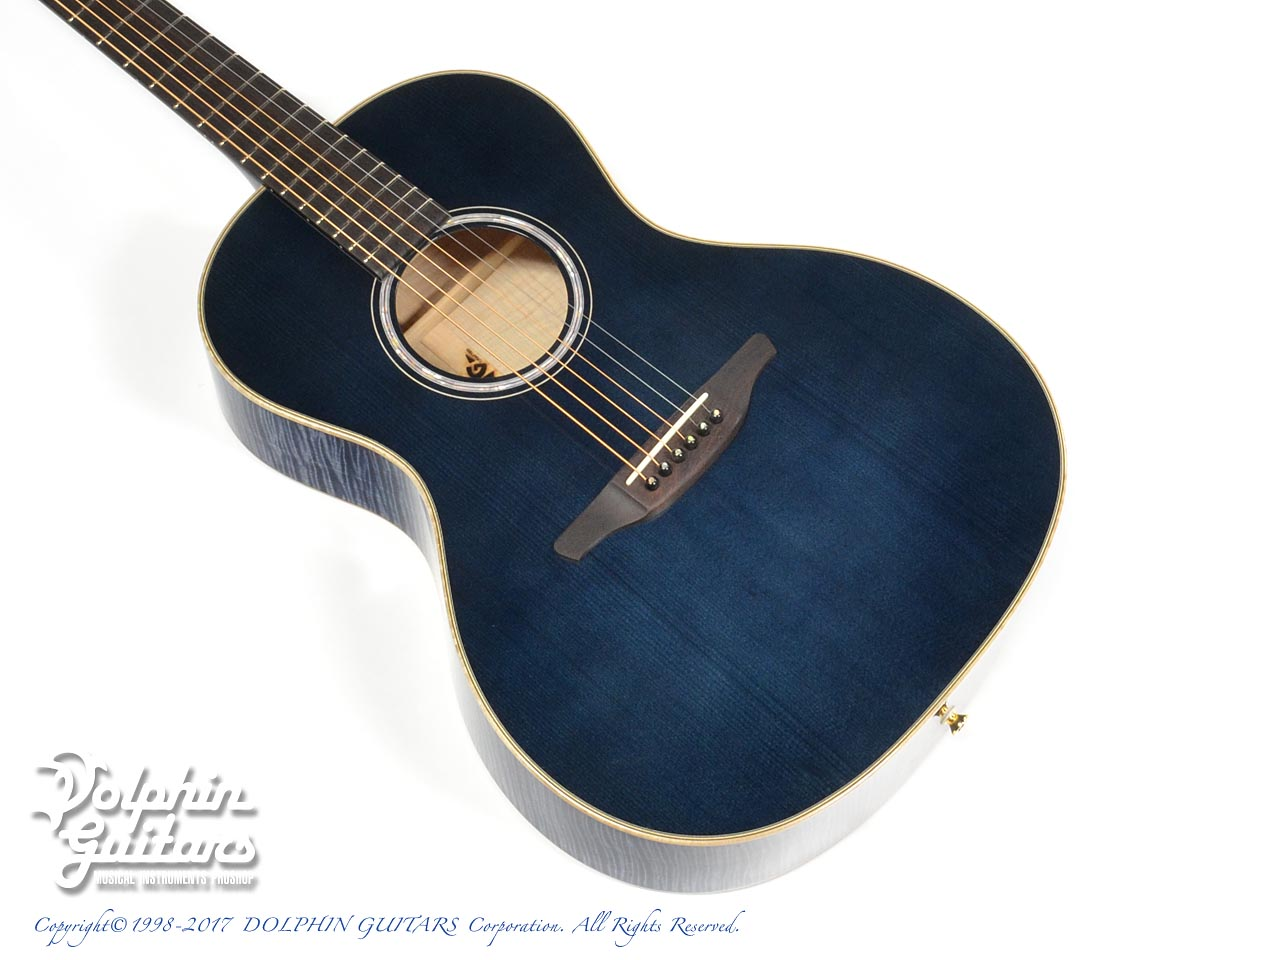 VG: VG-00 Ltd. FM (Flame Maple) (Sakan Gradation Blue) (1)